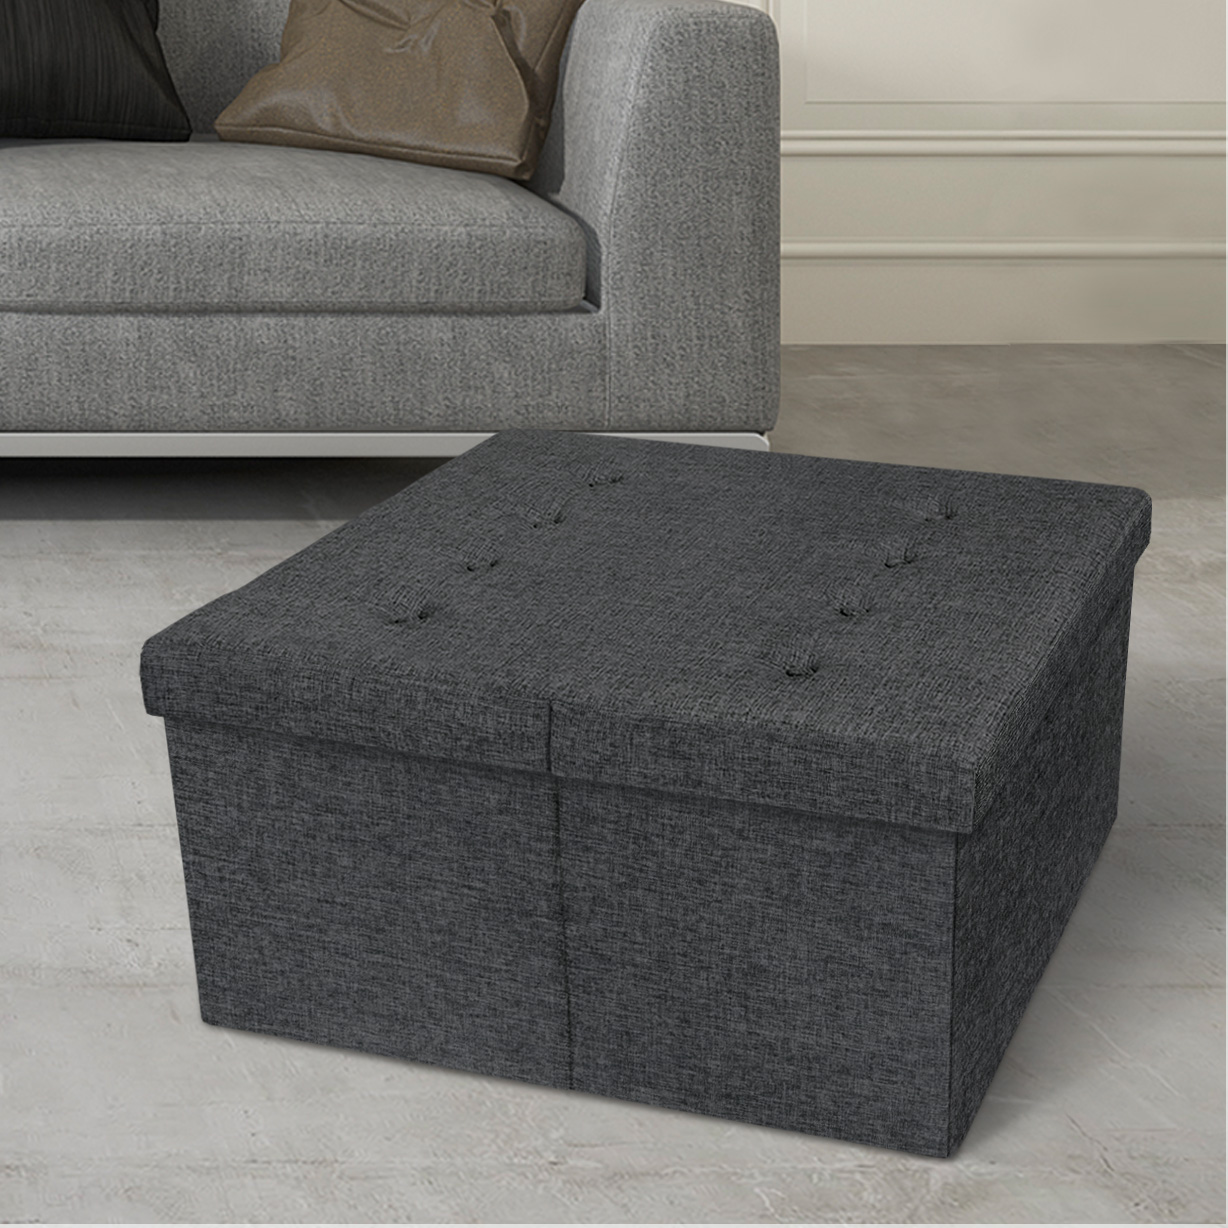 "Otto & Ben 30"" Storage Coffee Table with Smart Lift Top Tufted Folding Tweed Linen Trunk Ottomans Bench Foot Rest, Dark Gray"